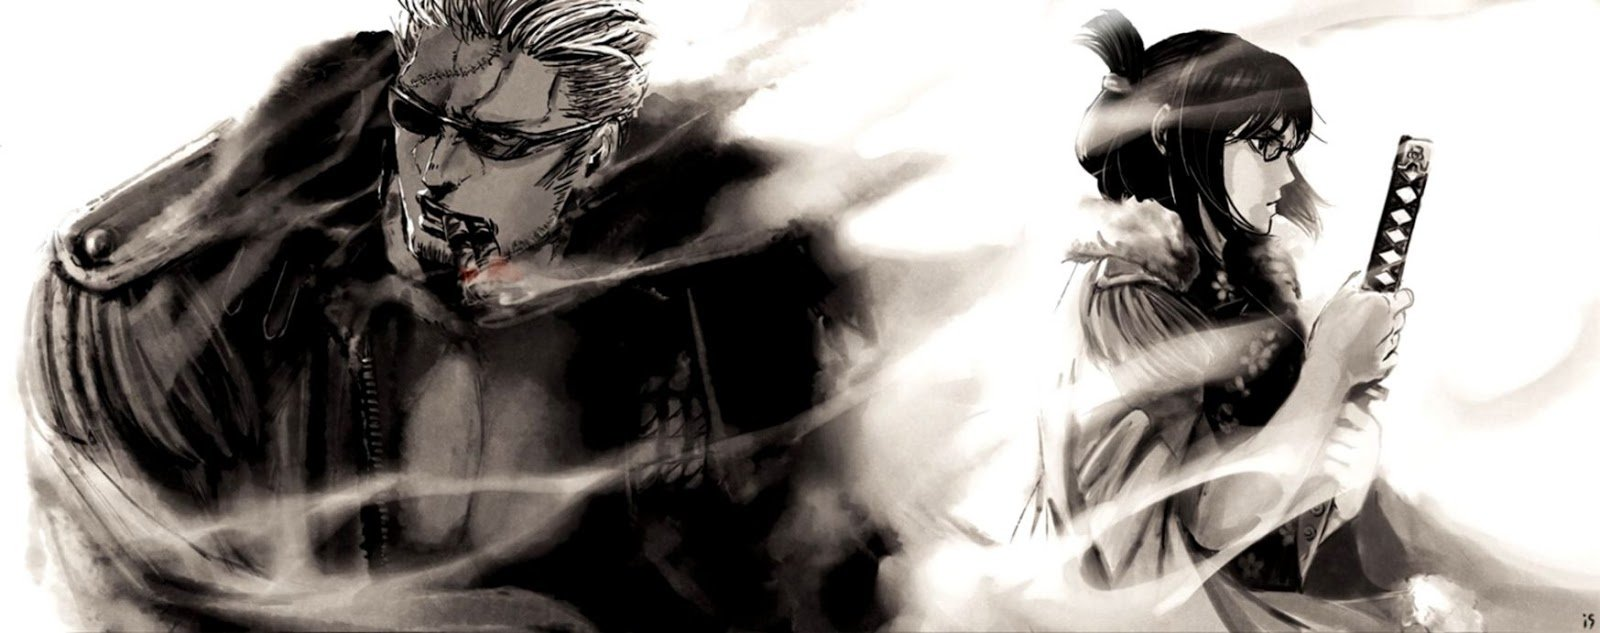 Smoker One Piece Anime Background Wallpapers 1600x633